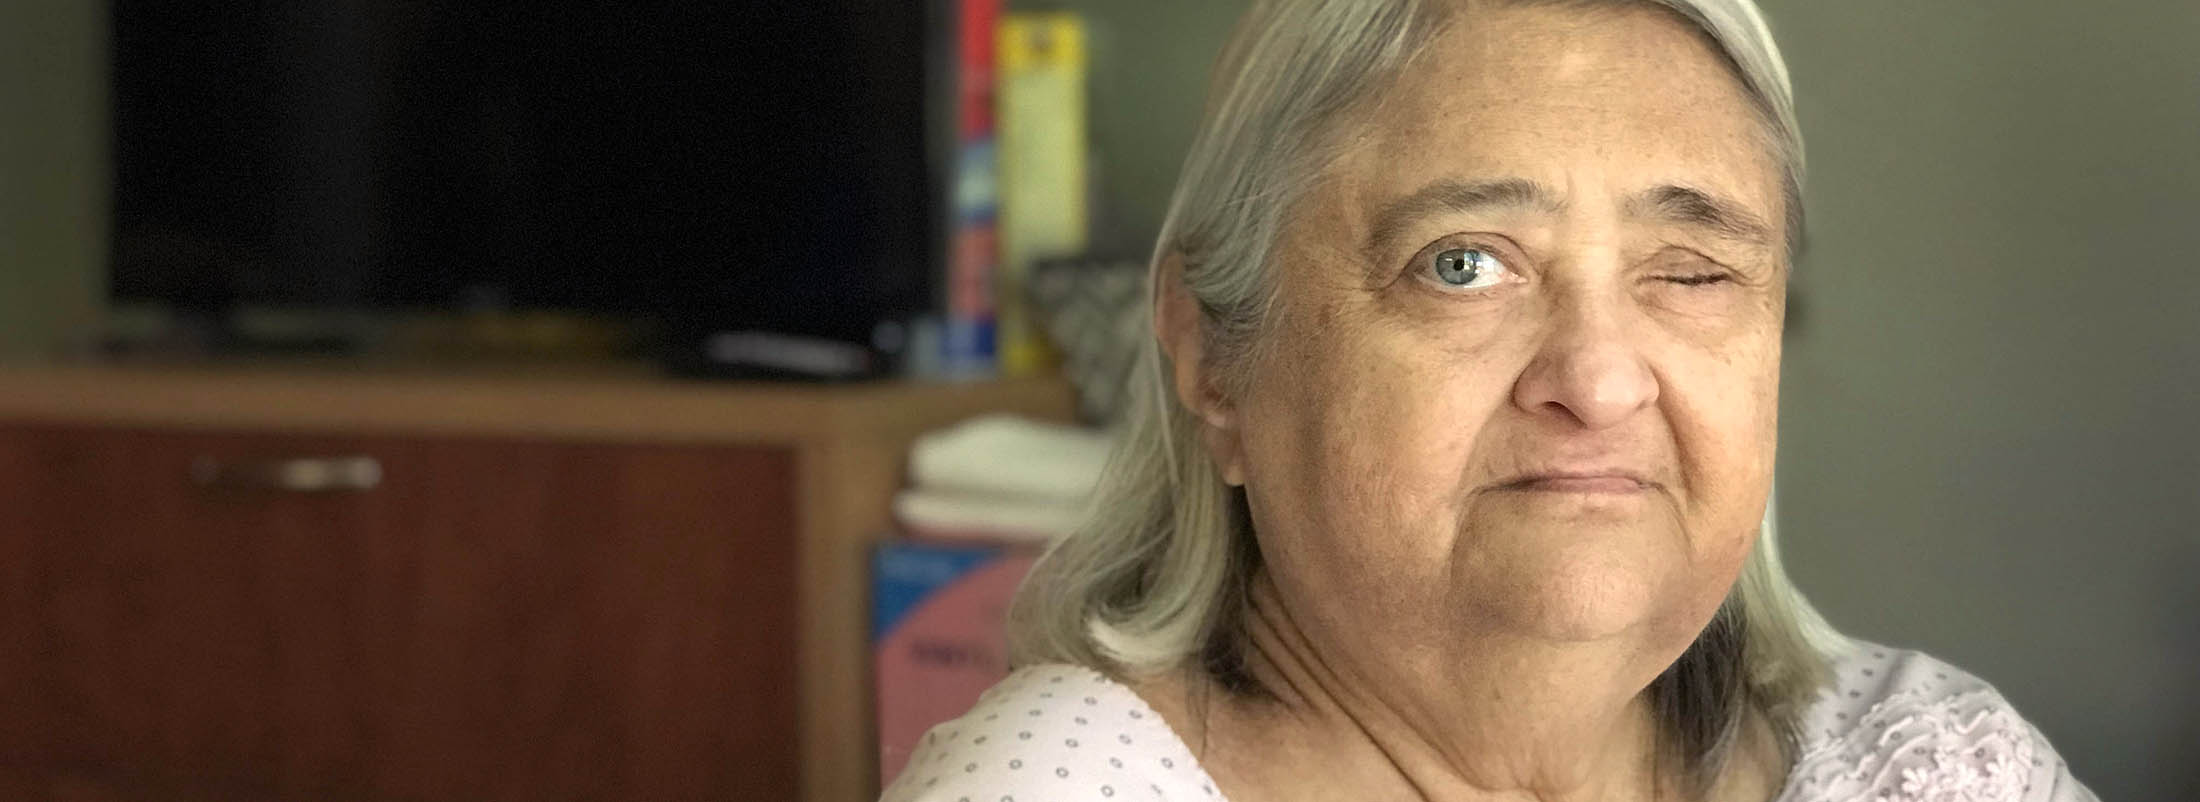 Sally Keller lost her left eye because the nursing home staff at Ellicott Center for Rehabilitation and Nursing failed to properly care for the eye after cataract surgery, according to the New York State Department of Health. (Mark Mulville/Buffalo News)